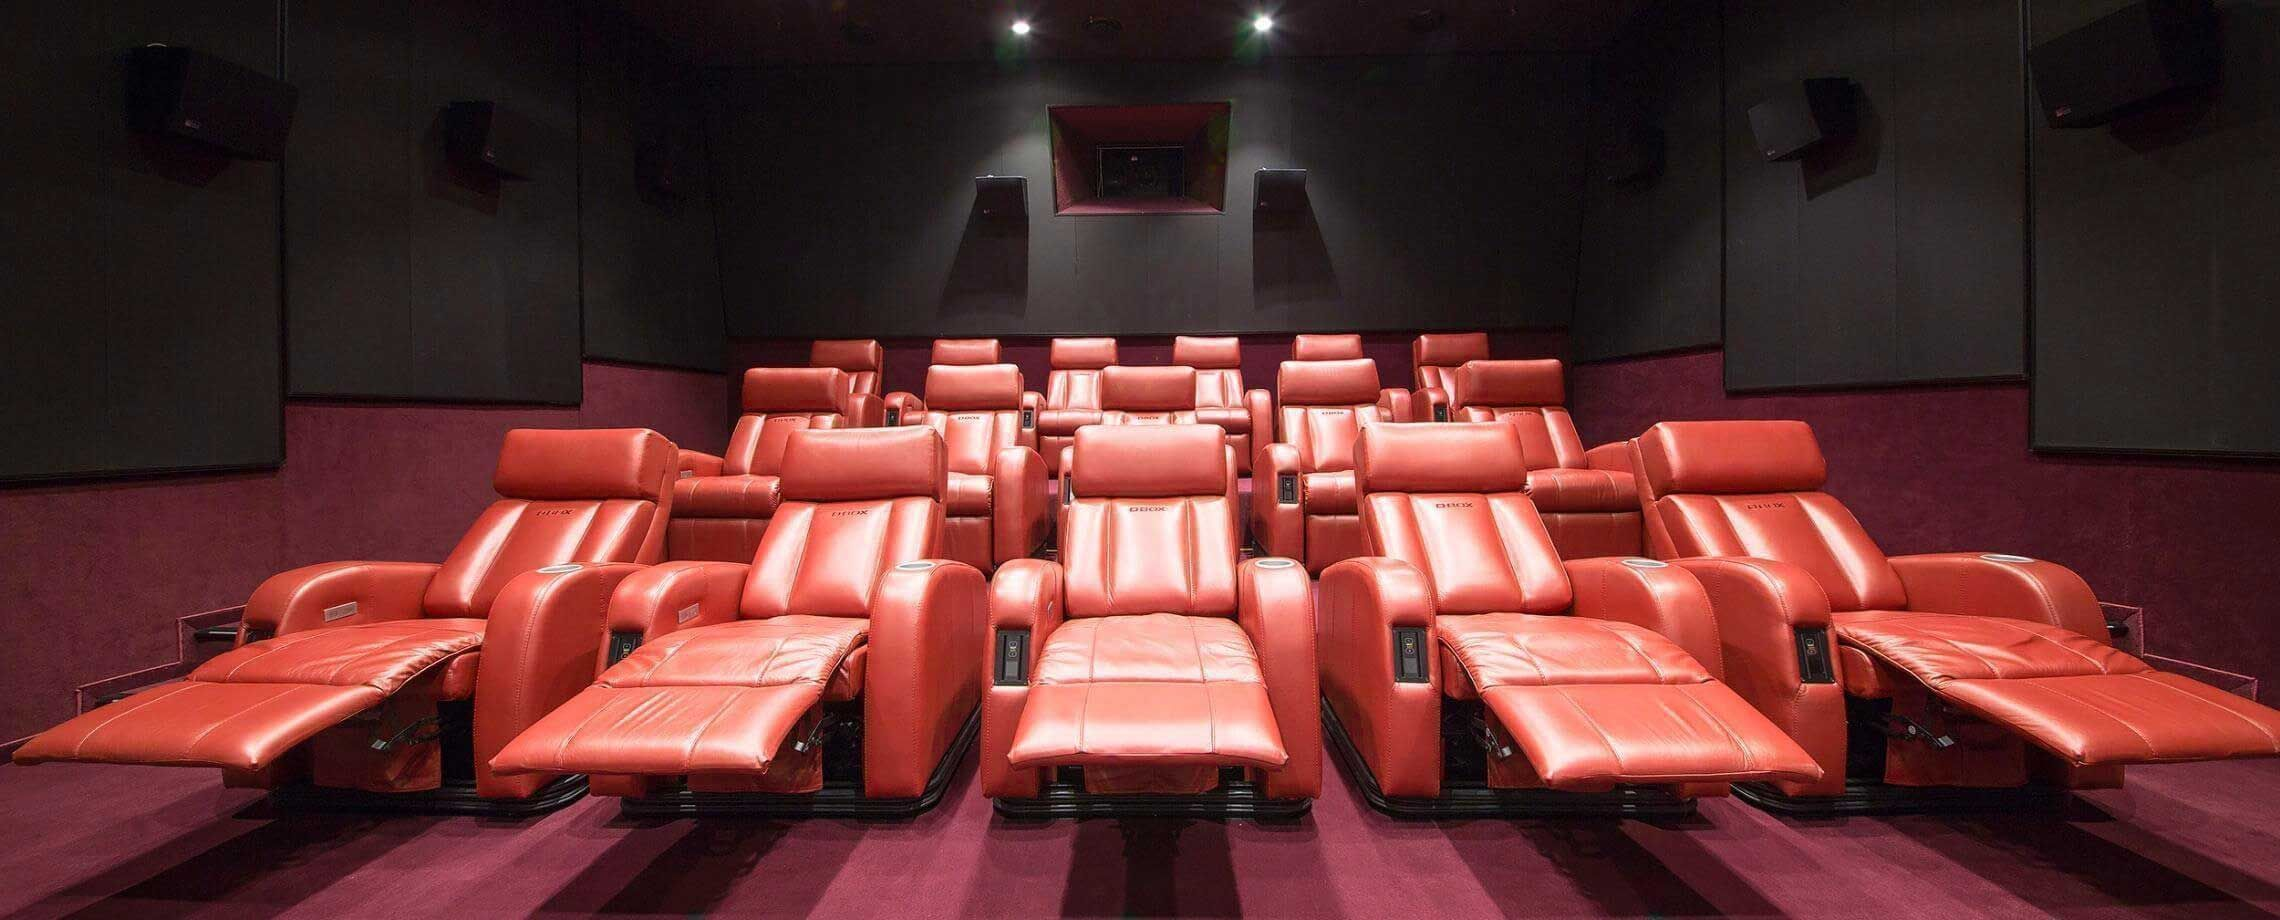 movies its chair recliner and tribune chicago chairs to arclight the get into cinemas chi you business story biz theater how off movie couch ct hopes